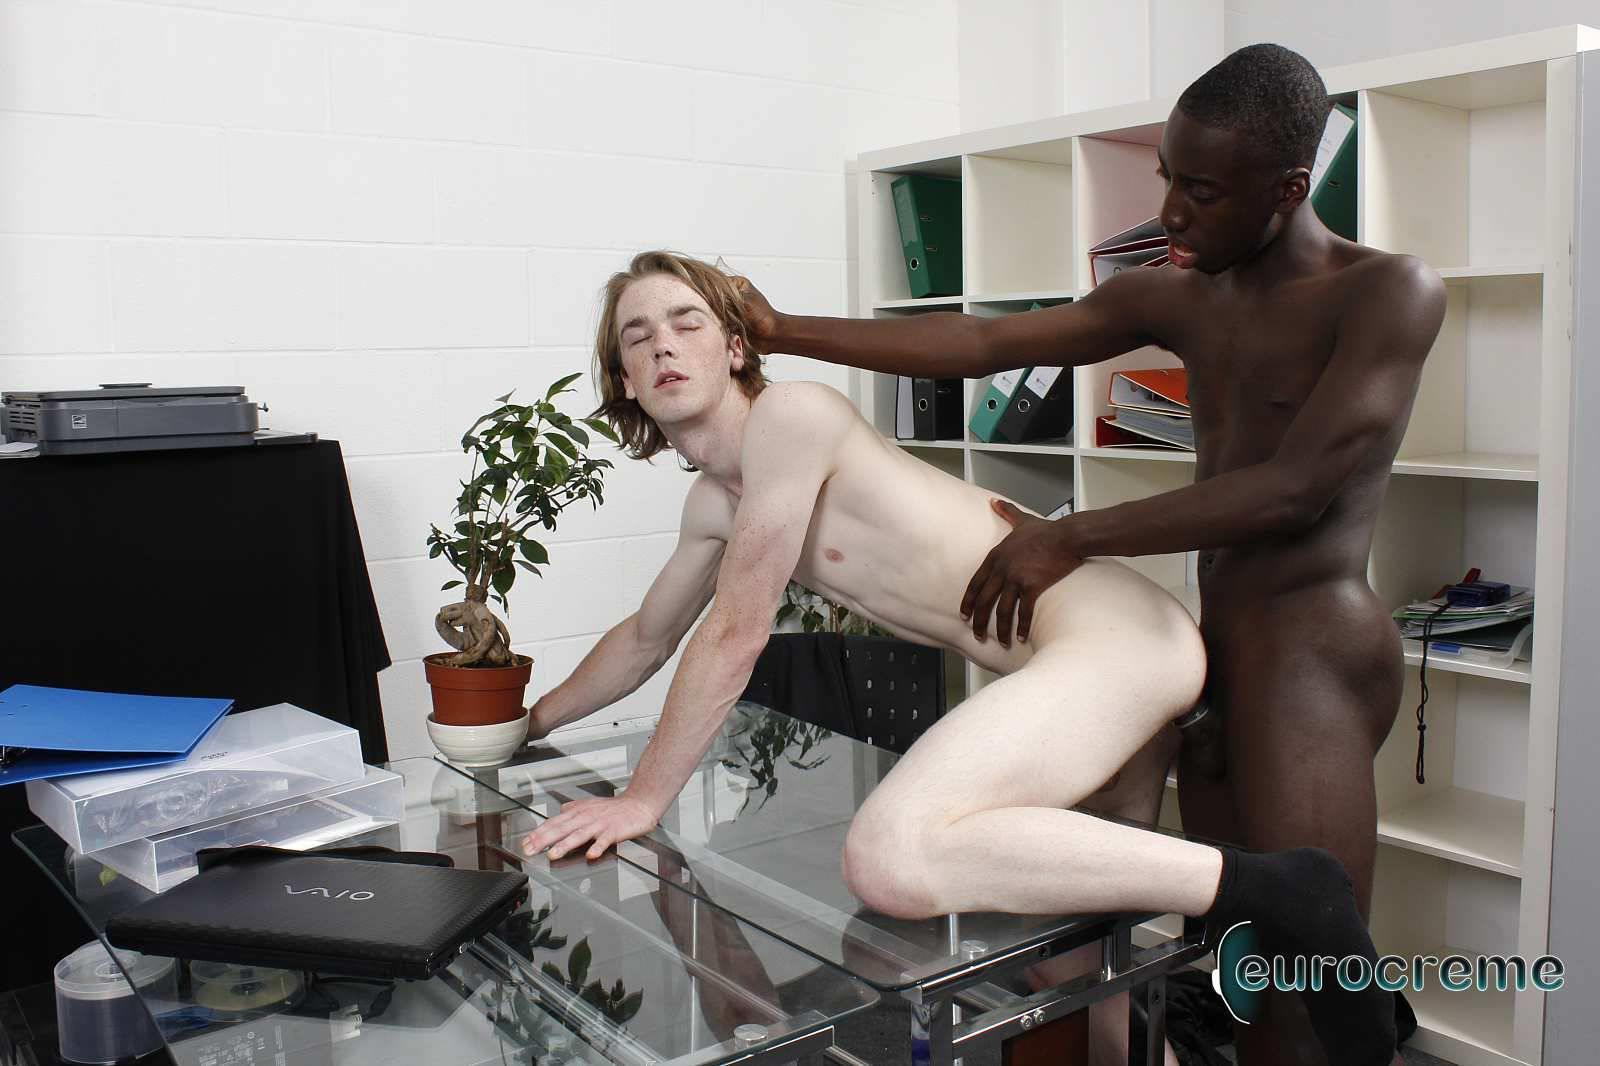 Eurocreme-Drew-and-Kai-Interracial-Gay-Sex-Video-Twinks-Amateur-Gay-Porn-15 Hung Black Twink Fucking a Ginger Bottom College Twink